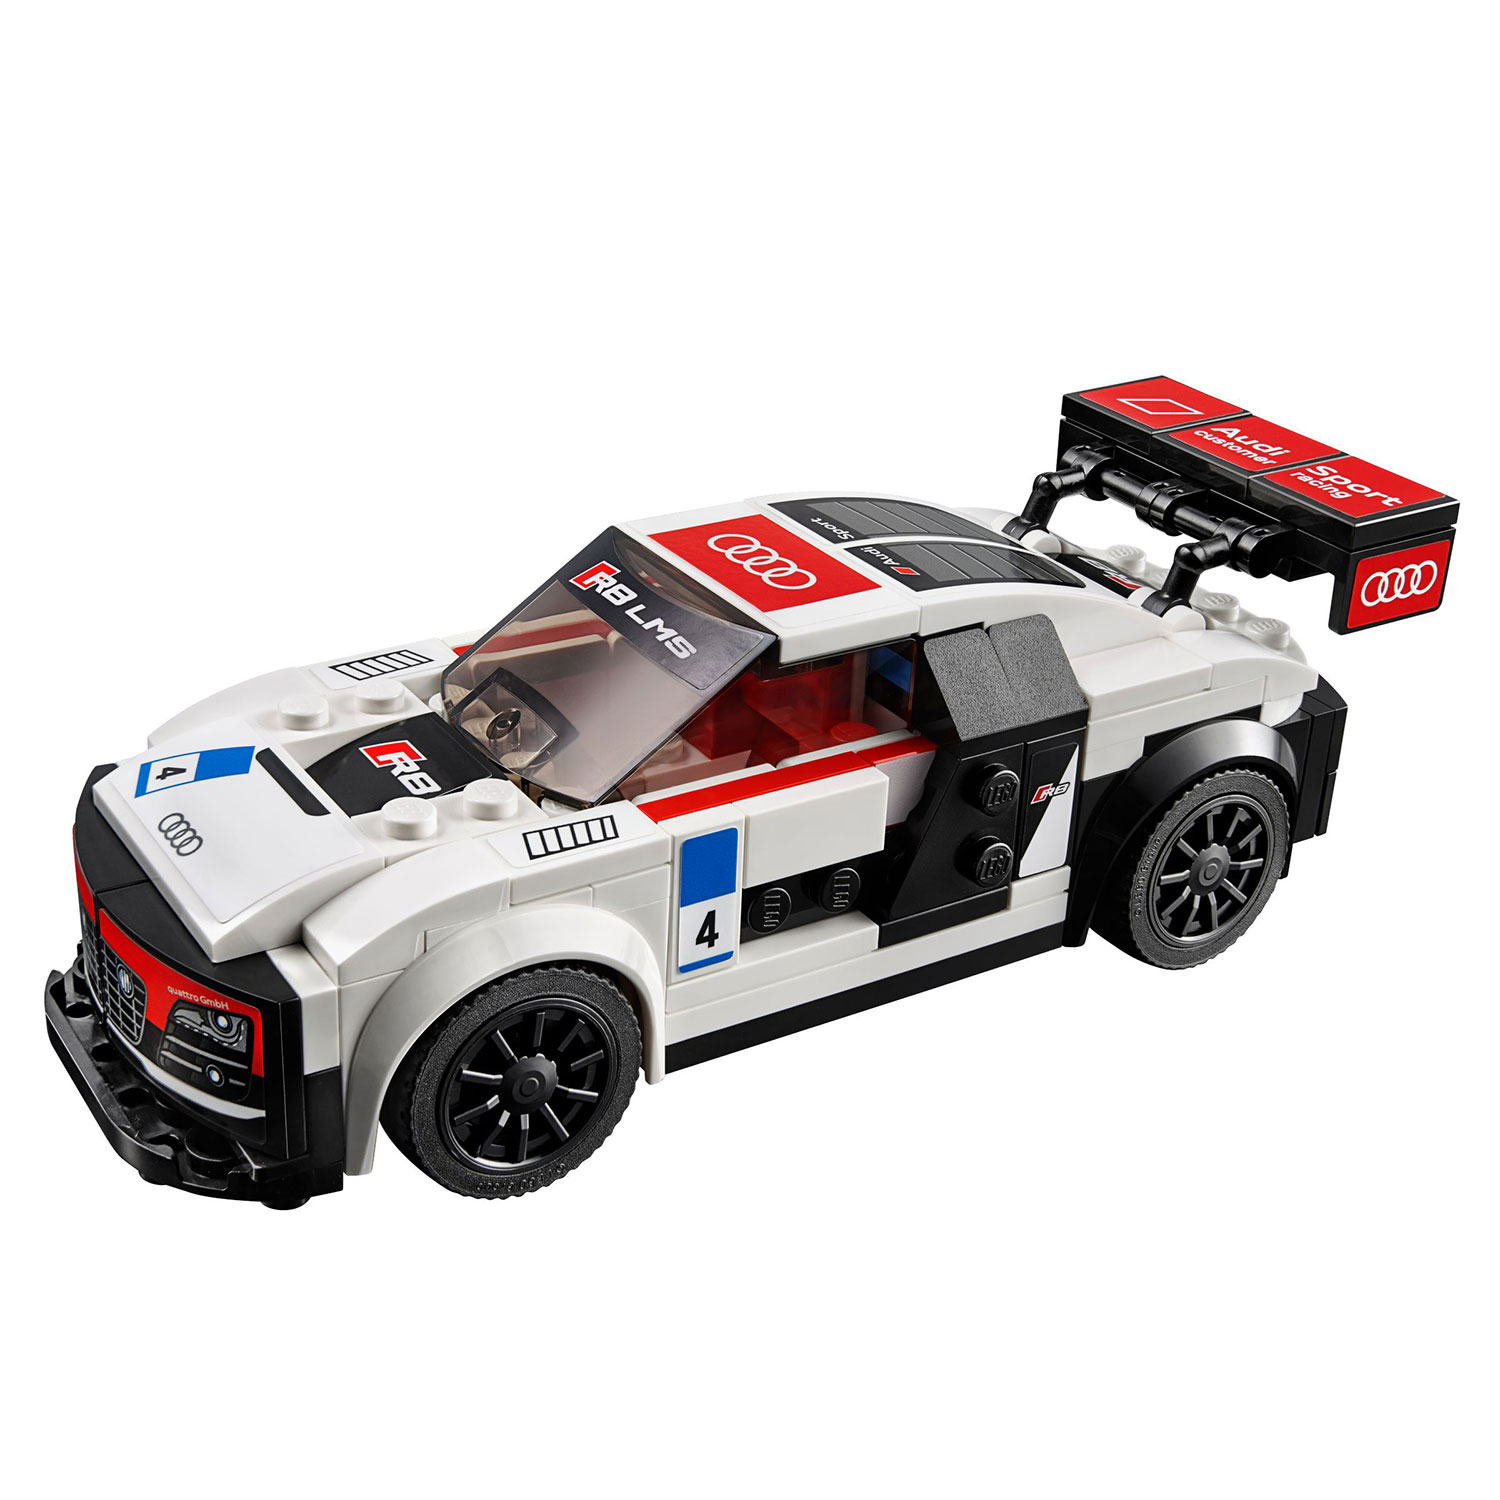 LEGO 75873 Speed Champions Audi R8 LMS Ultra At Hobby